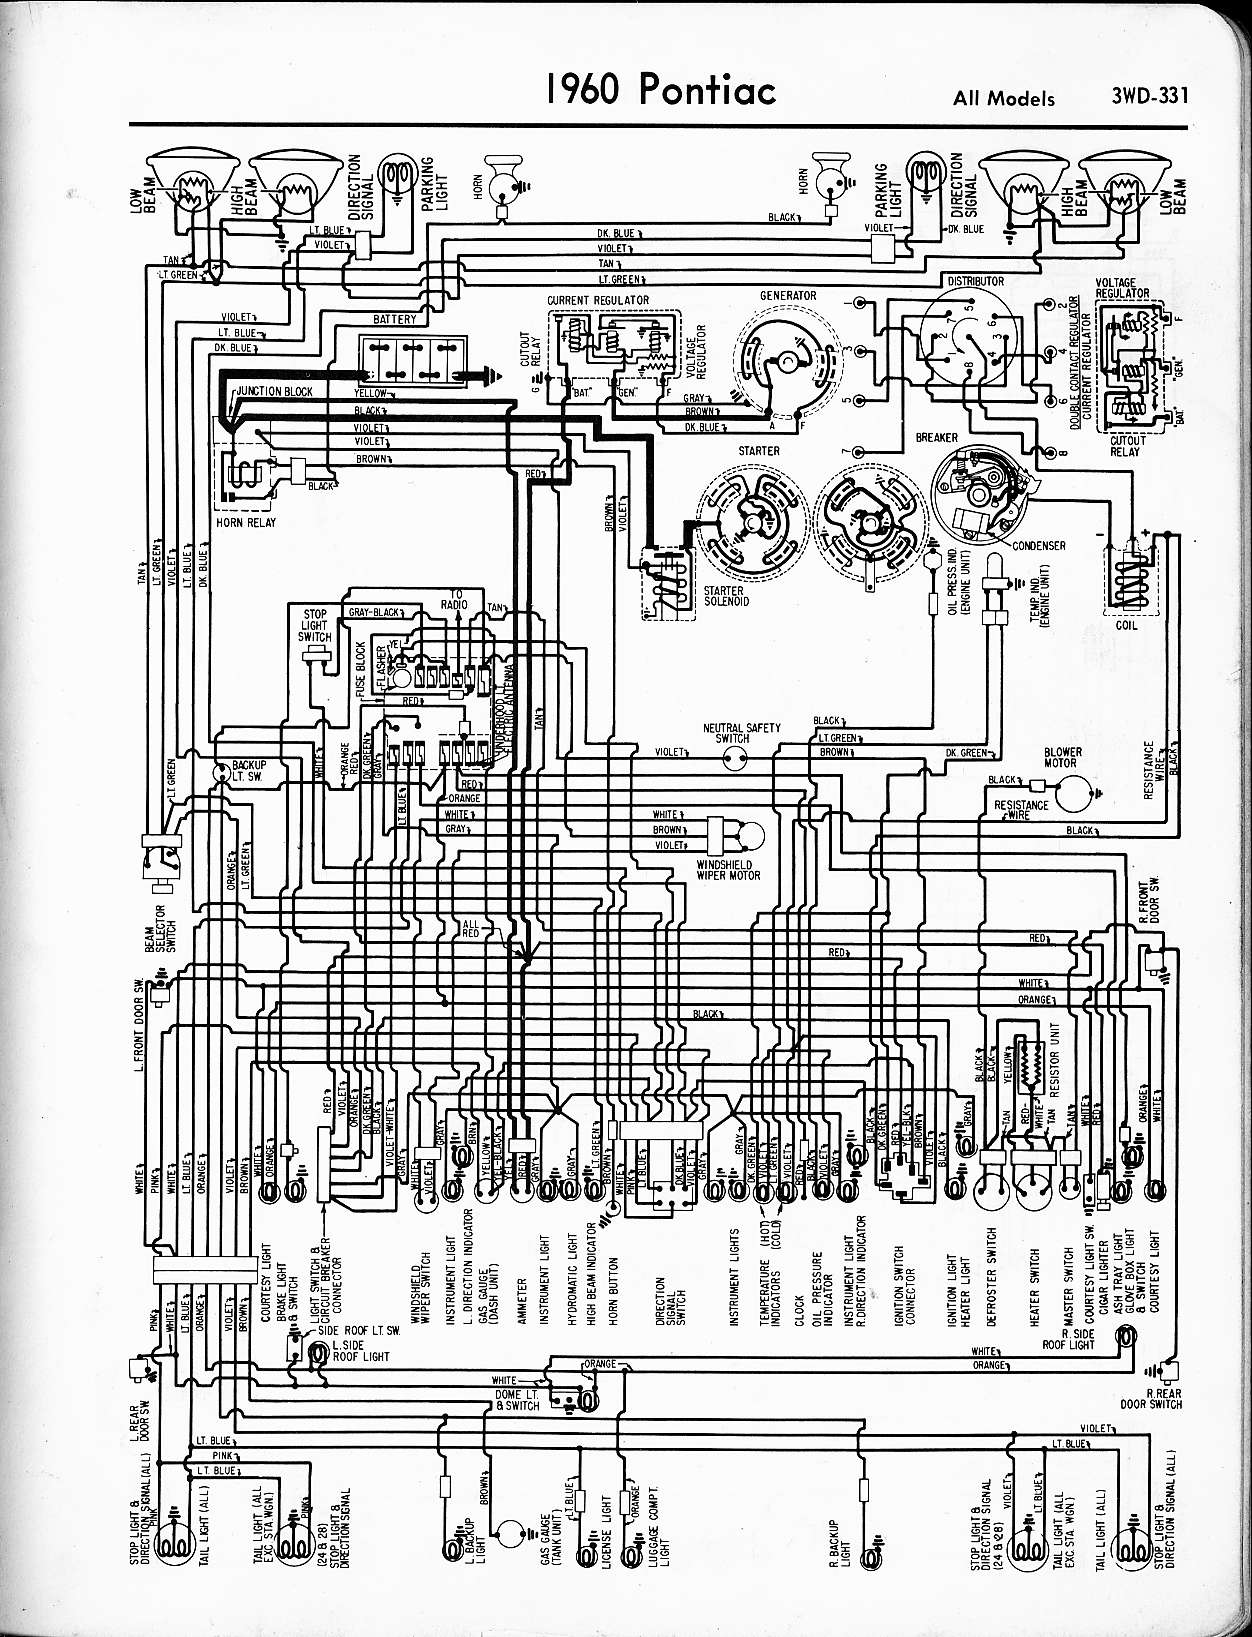 1967 Pontiac Catalina Wiring Diagrams Free Diagram For You Tempest Automotive Schematics Rh 3 18 4 Schlaglicht Regional De 1969 Gto